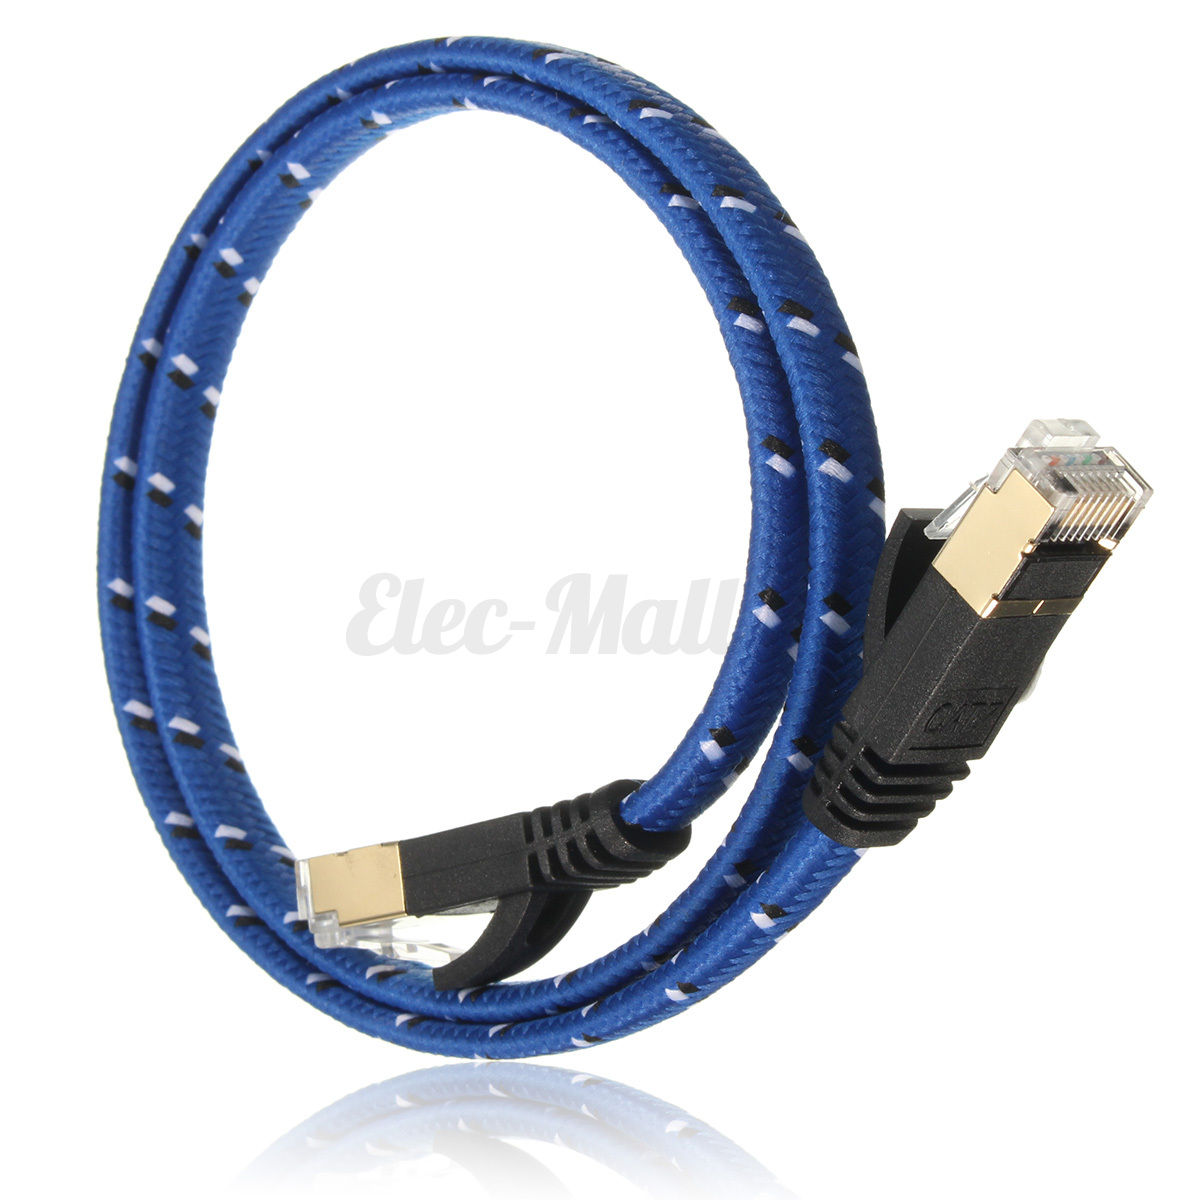 Ethernet Cables Rj45 Colors Crossover Bb Electronics